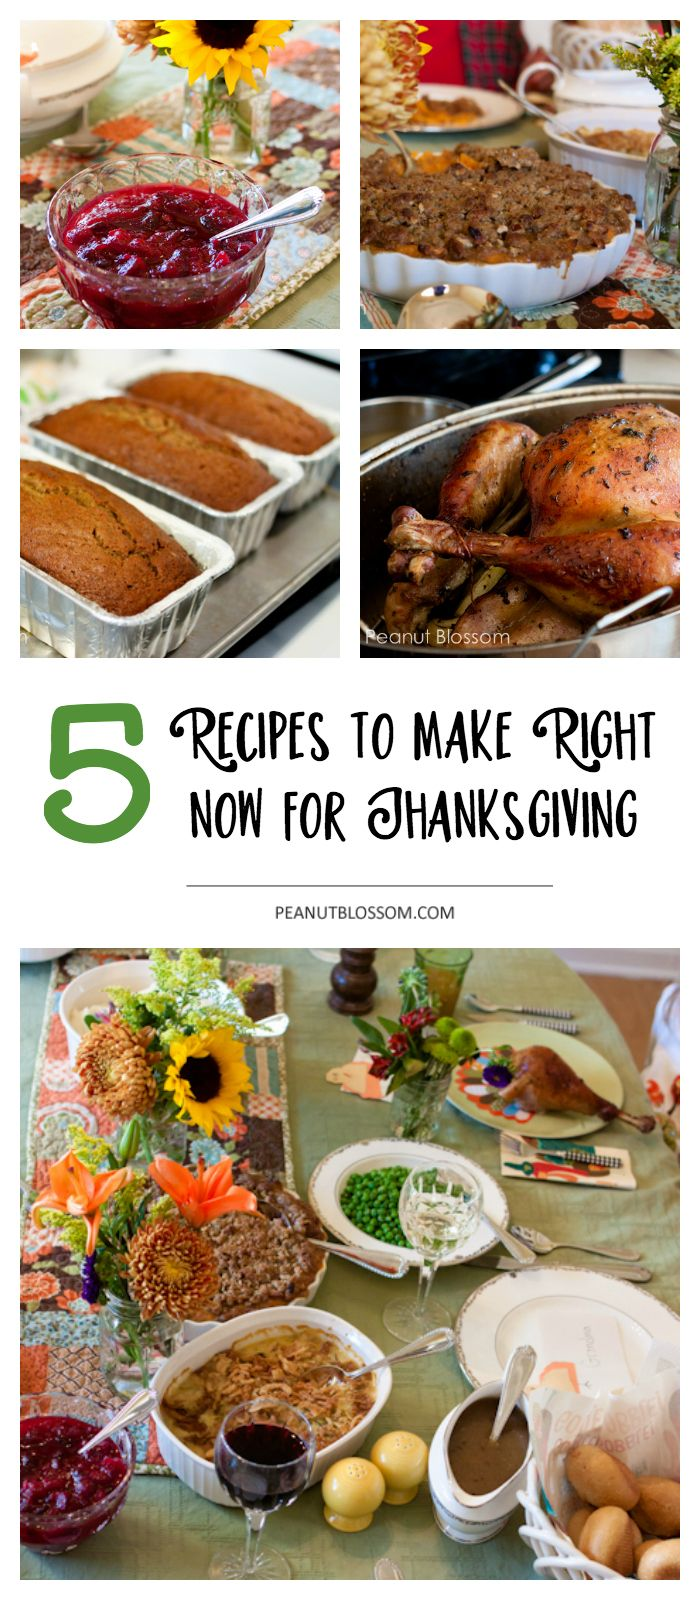 5 prep ahead for Thanksgiving recipes you can make right now. Don't let Thanksgiving menu planning be stressful, these easy holiday recipes can be made early when you have time and then just served on Thanksgiving!